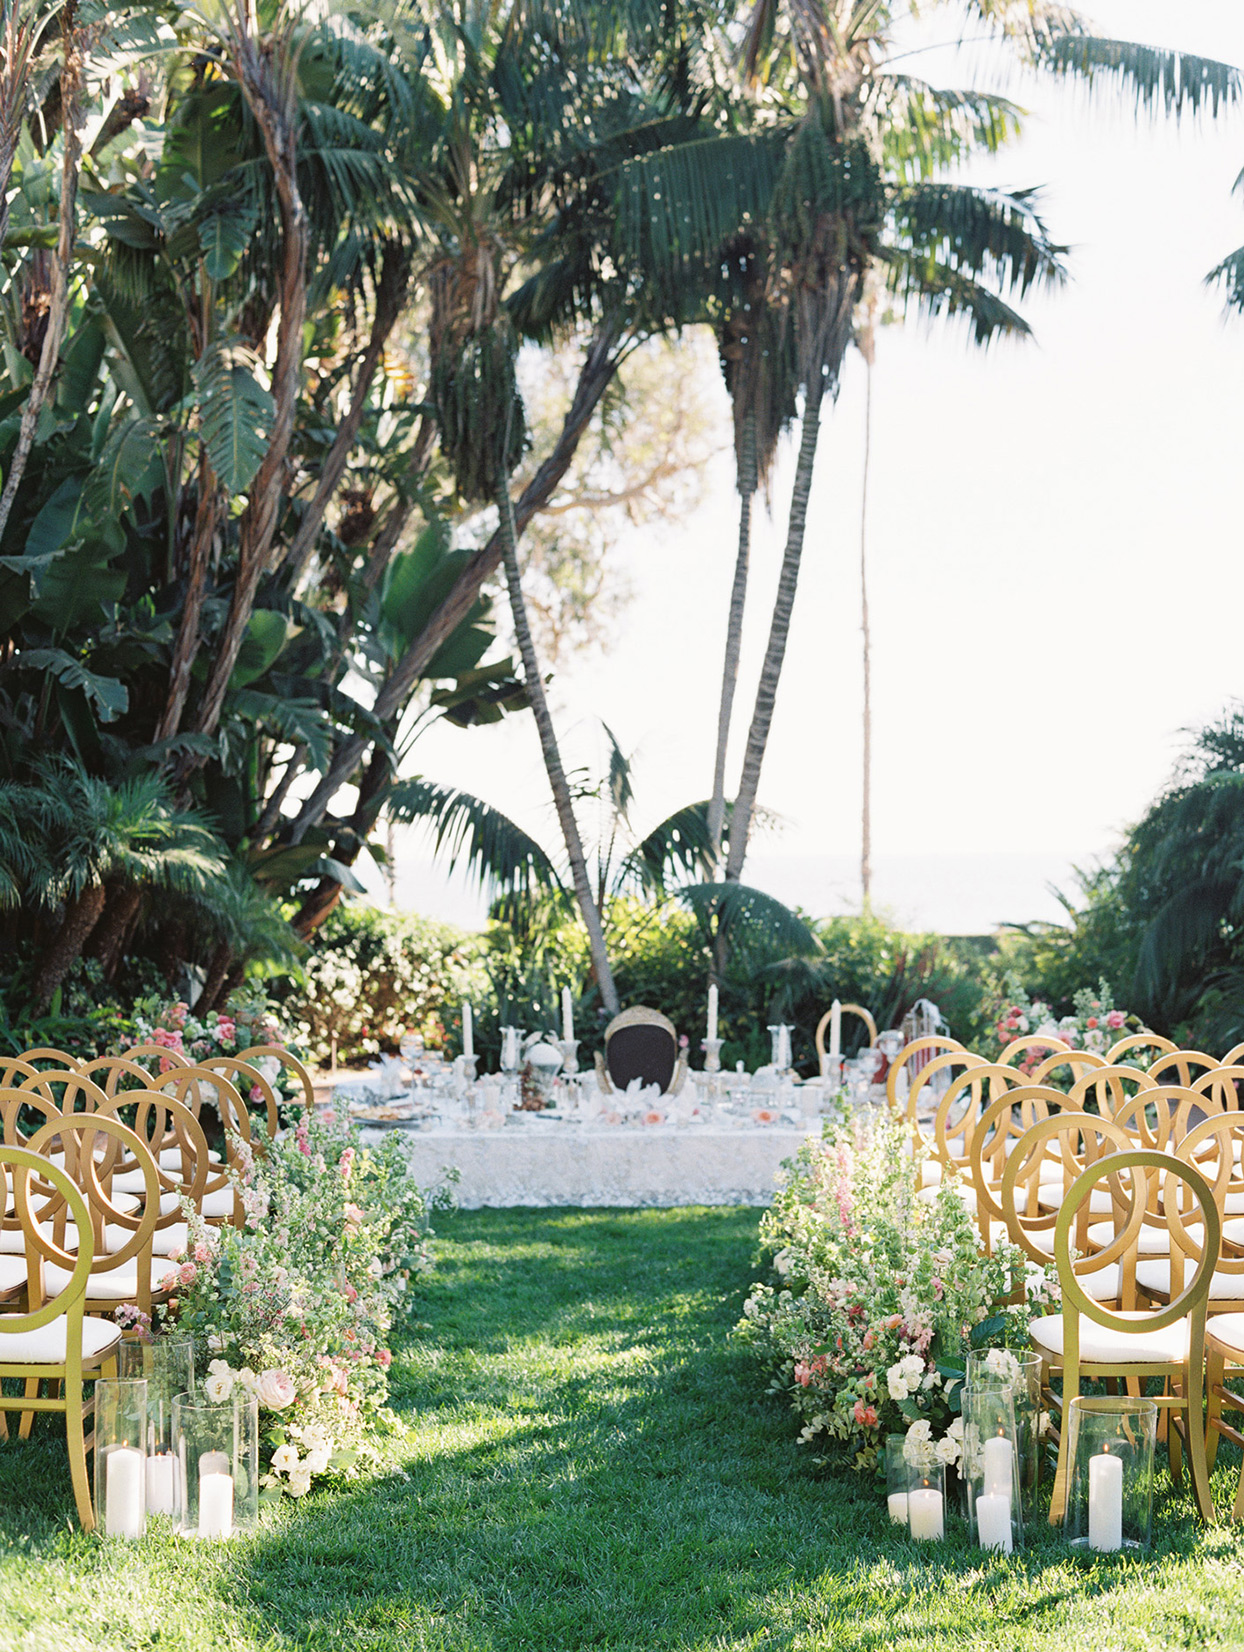 wedding outdoor ceremony set up in garden